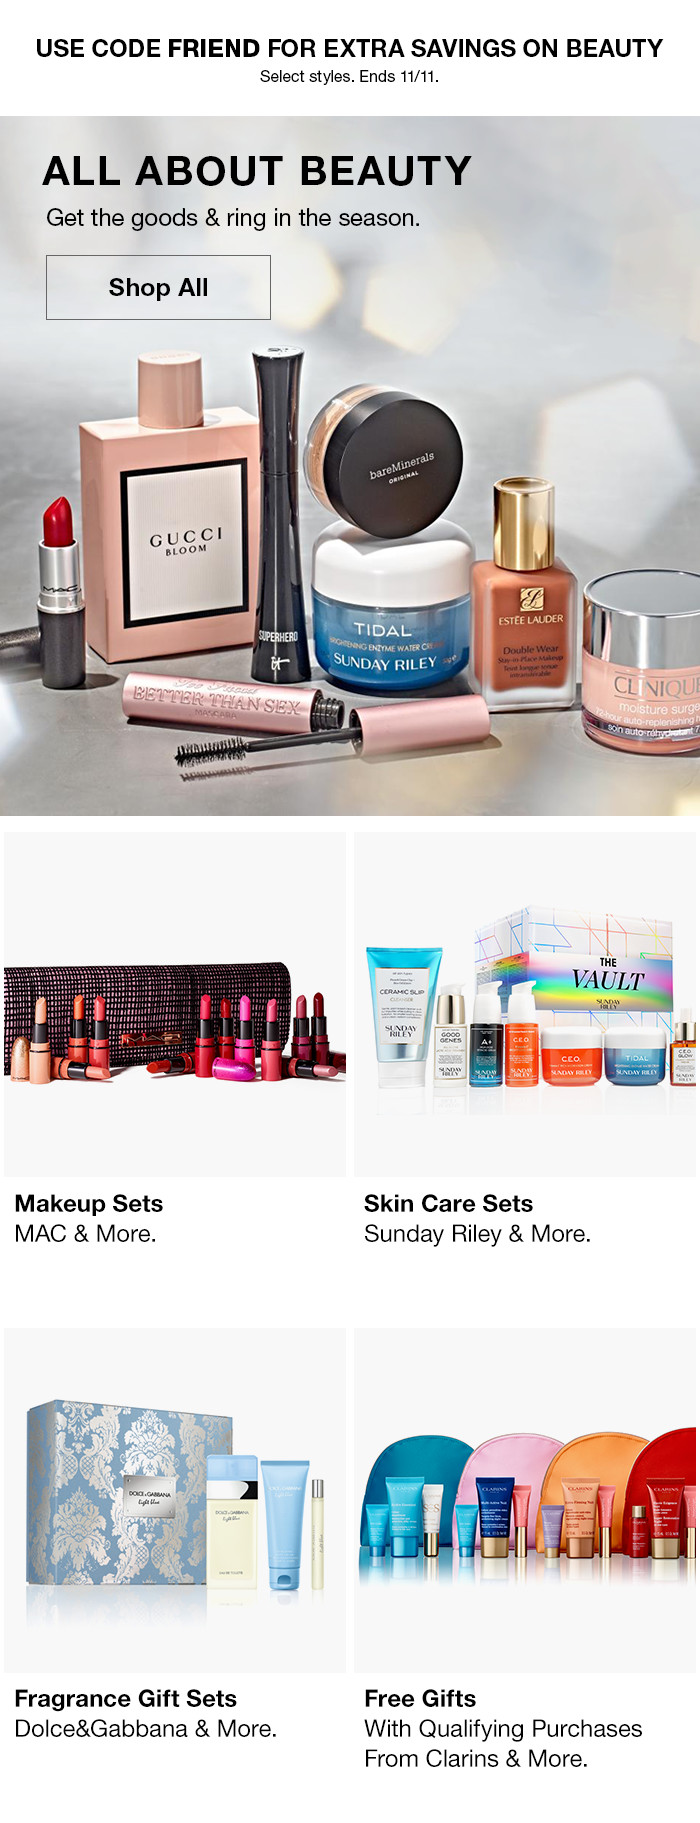 Use Code Friend For Extra Savings on Beauty, All About Beauty, Shop All, Makeup Sets, Skin Care Sets, Fragrance Gift Sets, Free Gifts